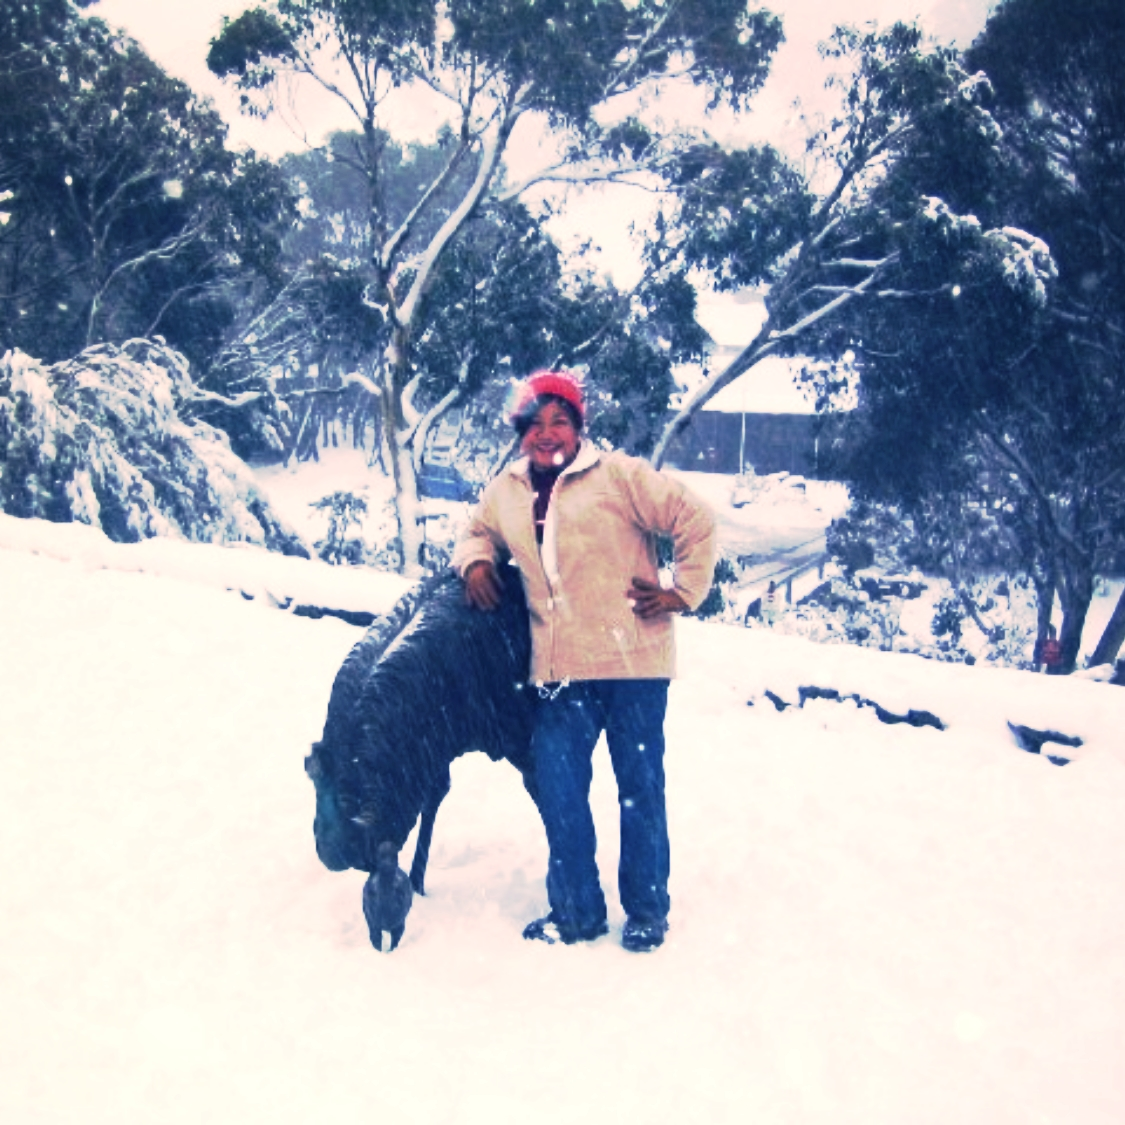 Thredbo, NSW, Australia